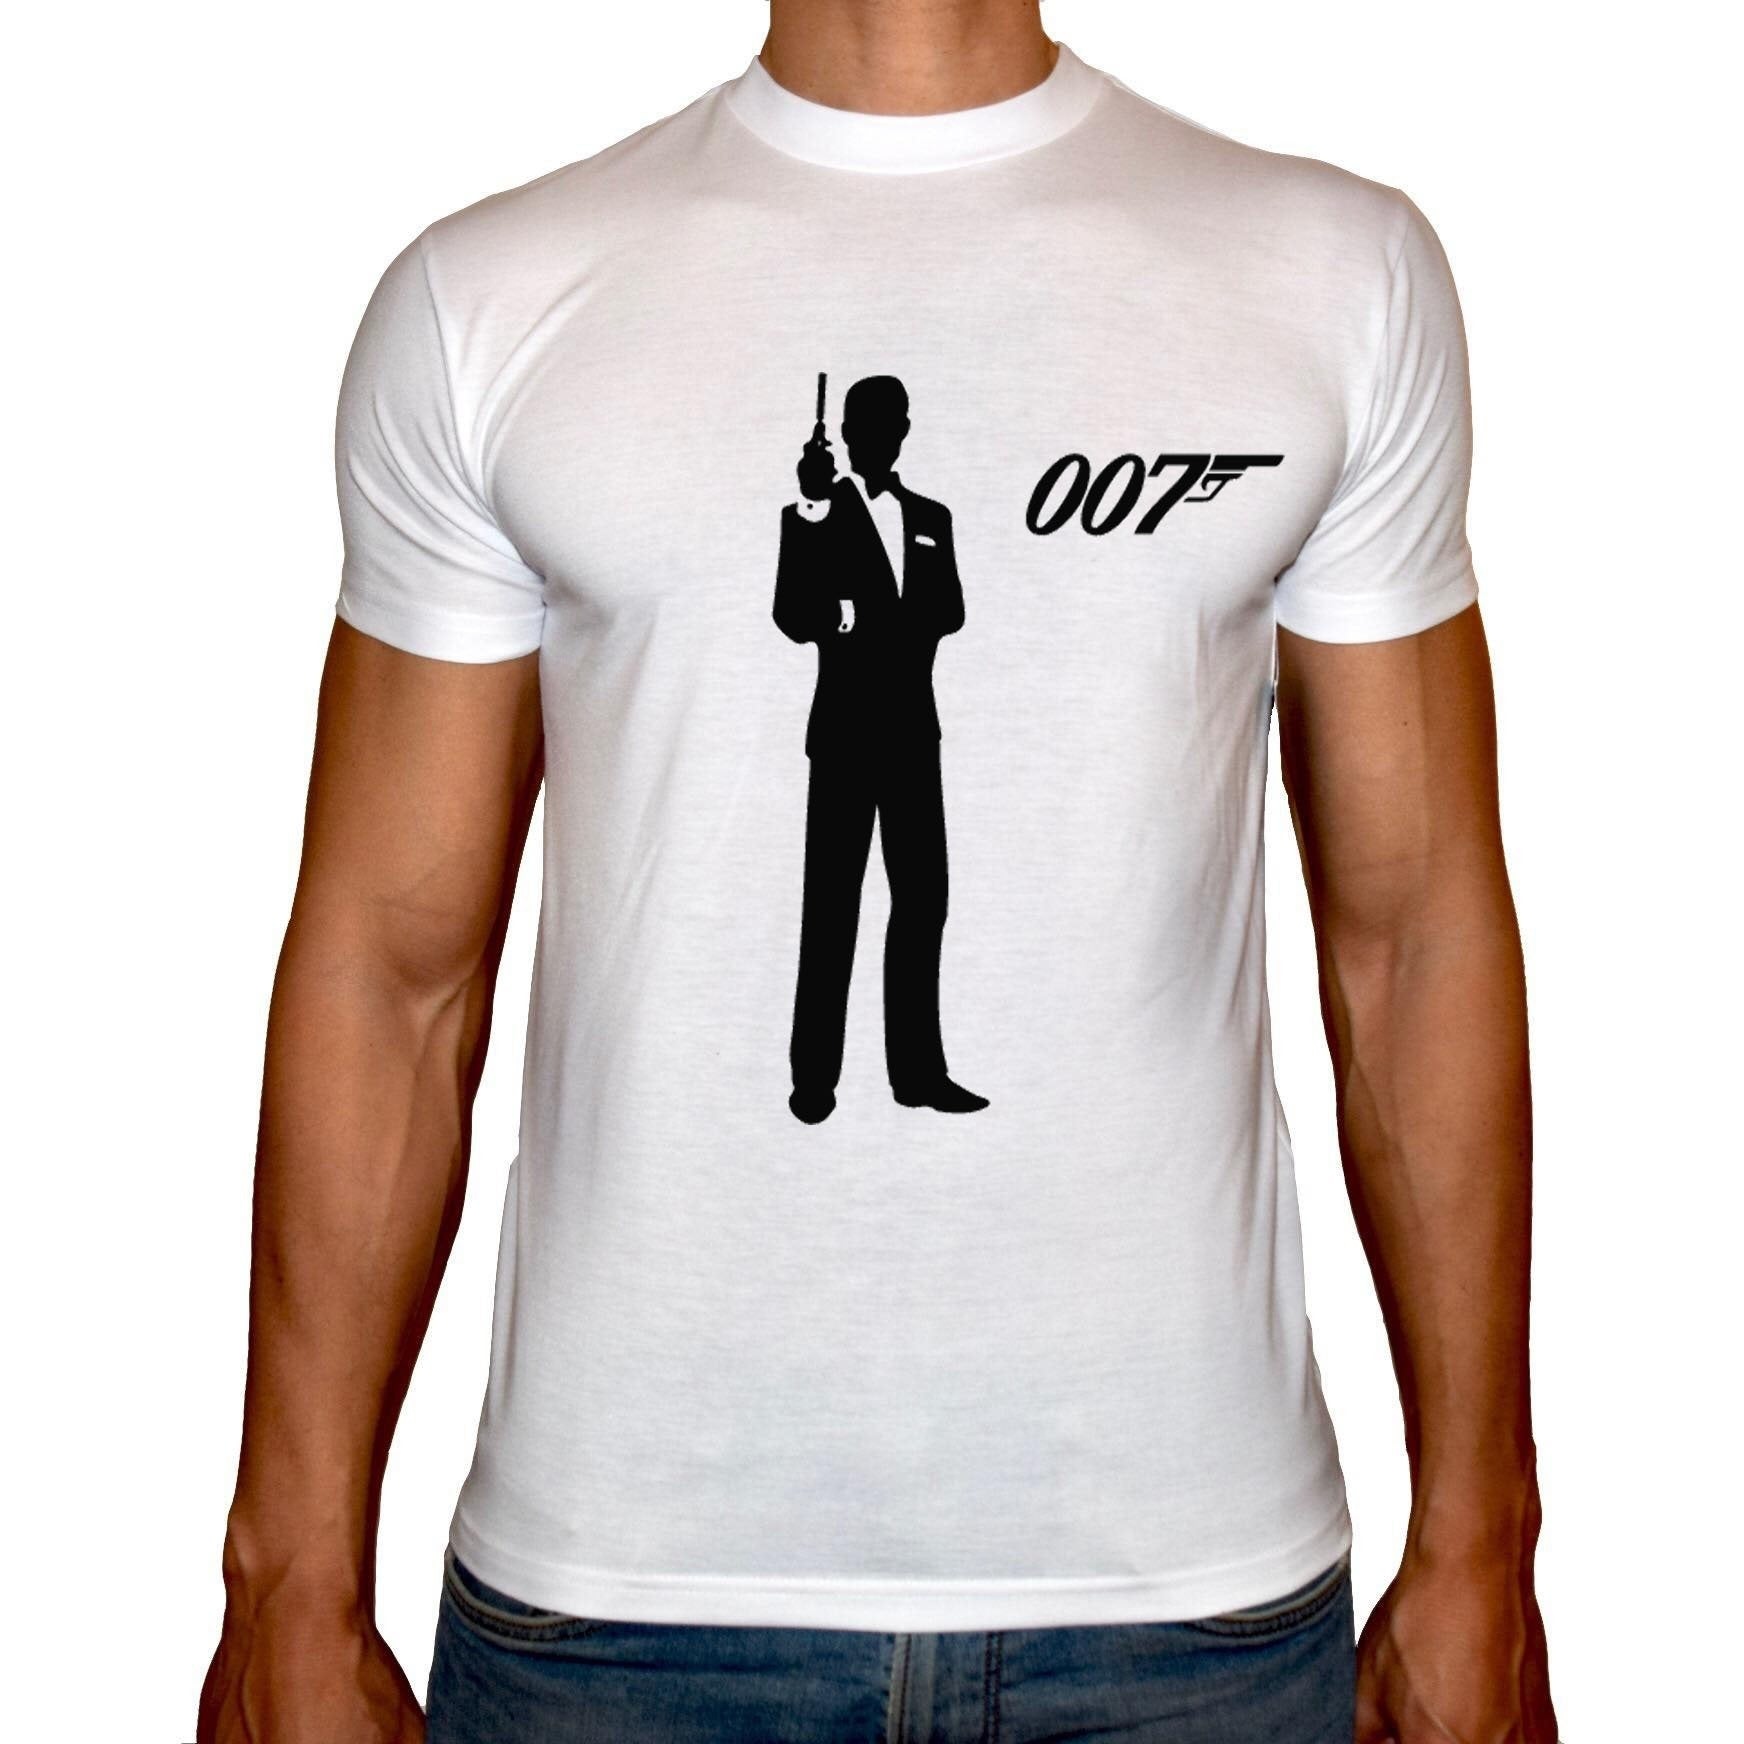 Phoenix WHITE Round Neck Printed T-Shirt Men (James bond)